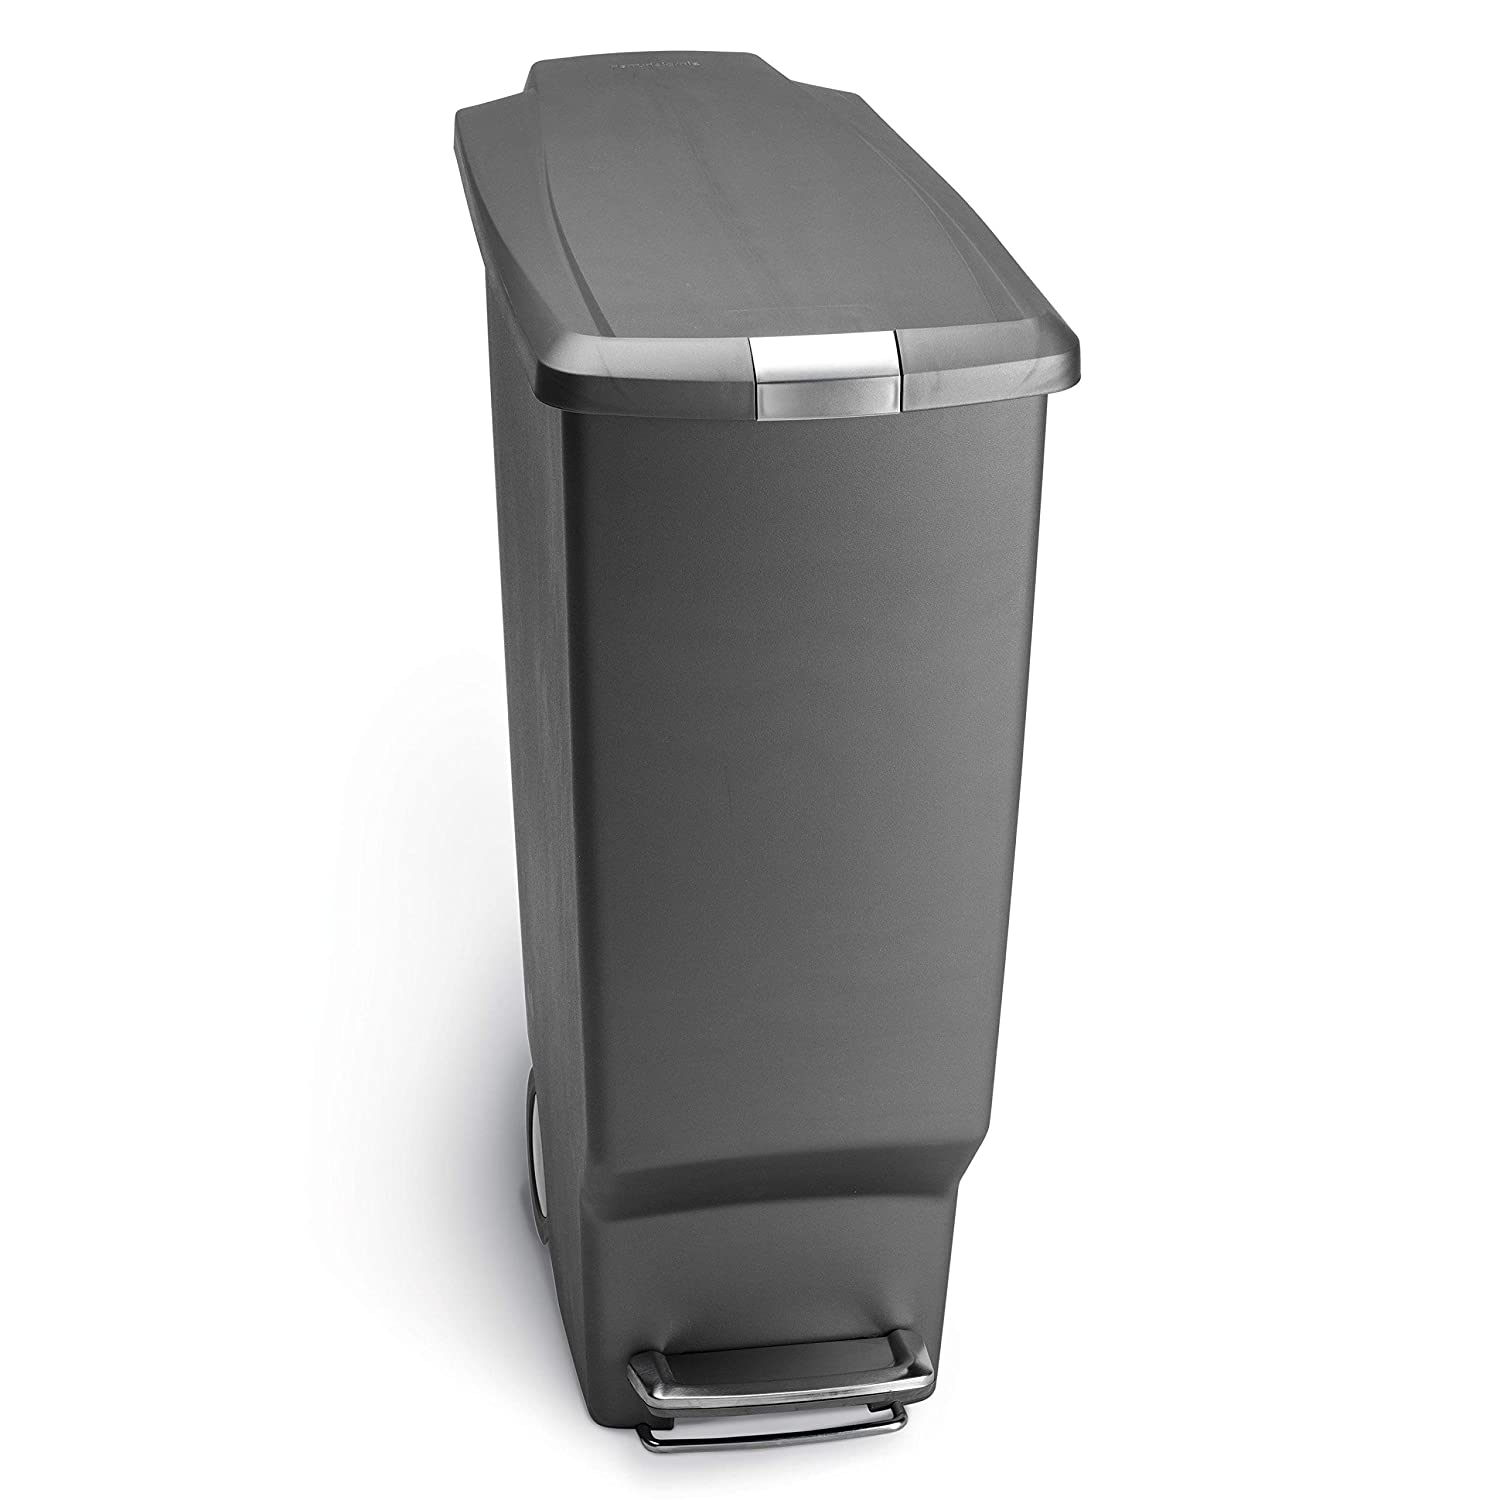 simplehuman 40 Liter / 10.6 Gallon Slim Kitchen Step Trash Can